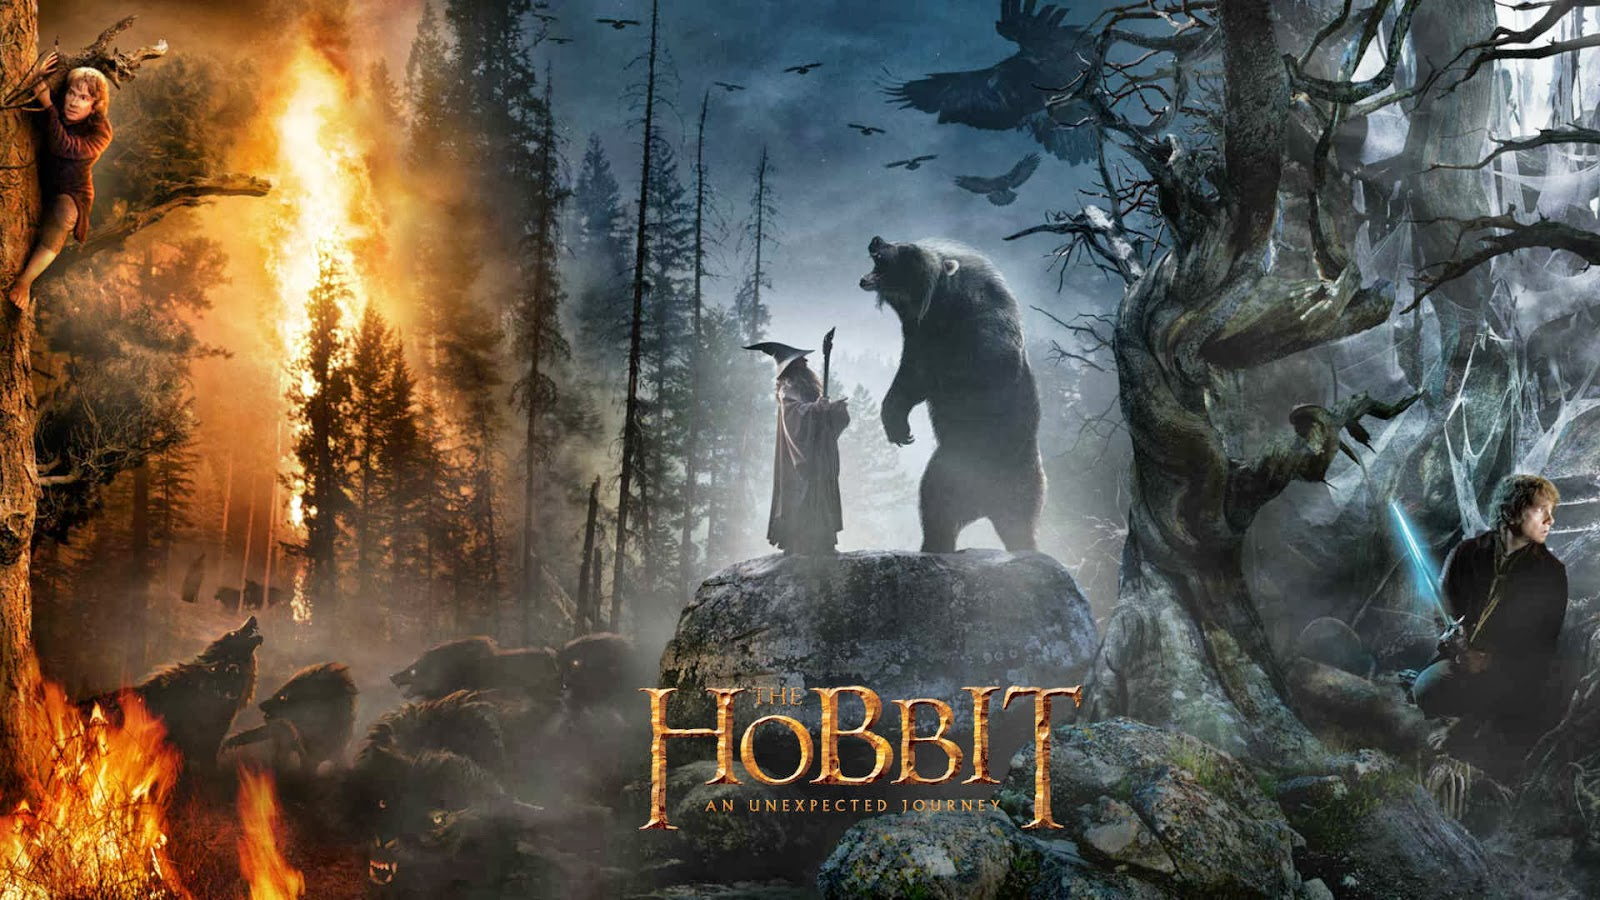 jonathan partner level tv film essay the hobbit an audience marketing